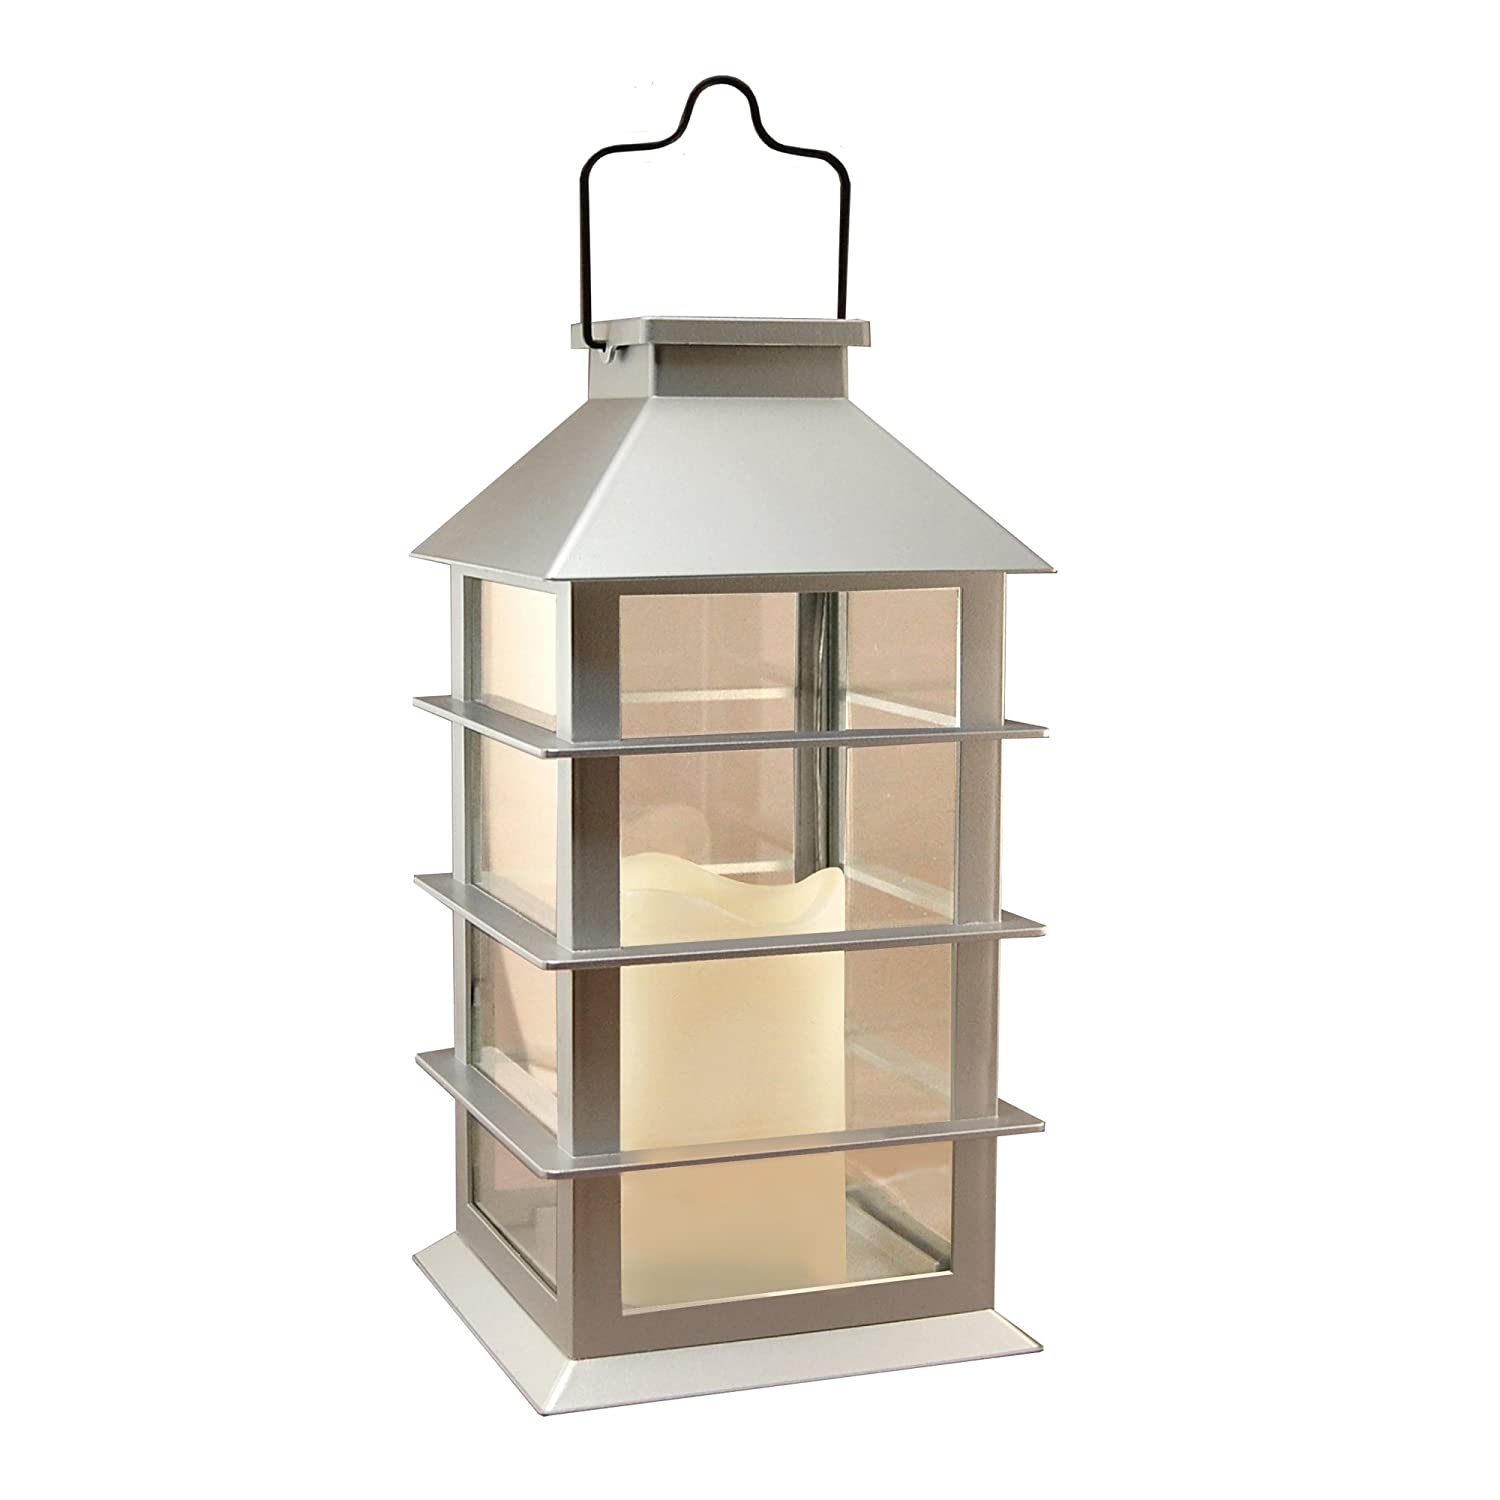 LumaBase 94101 Solar Powered Lantern with LED Candle, Silver B01H6Q0H5S 13247